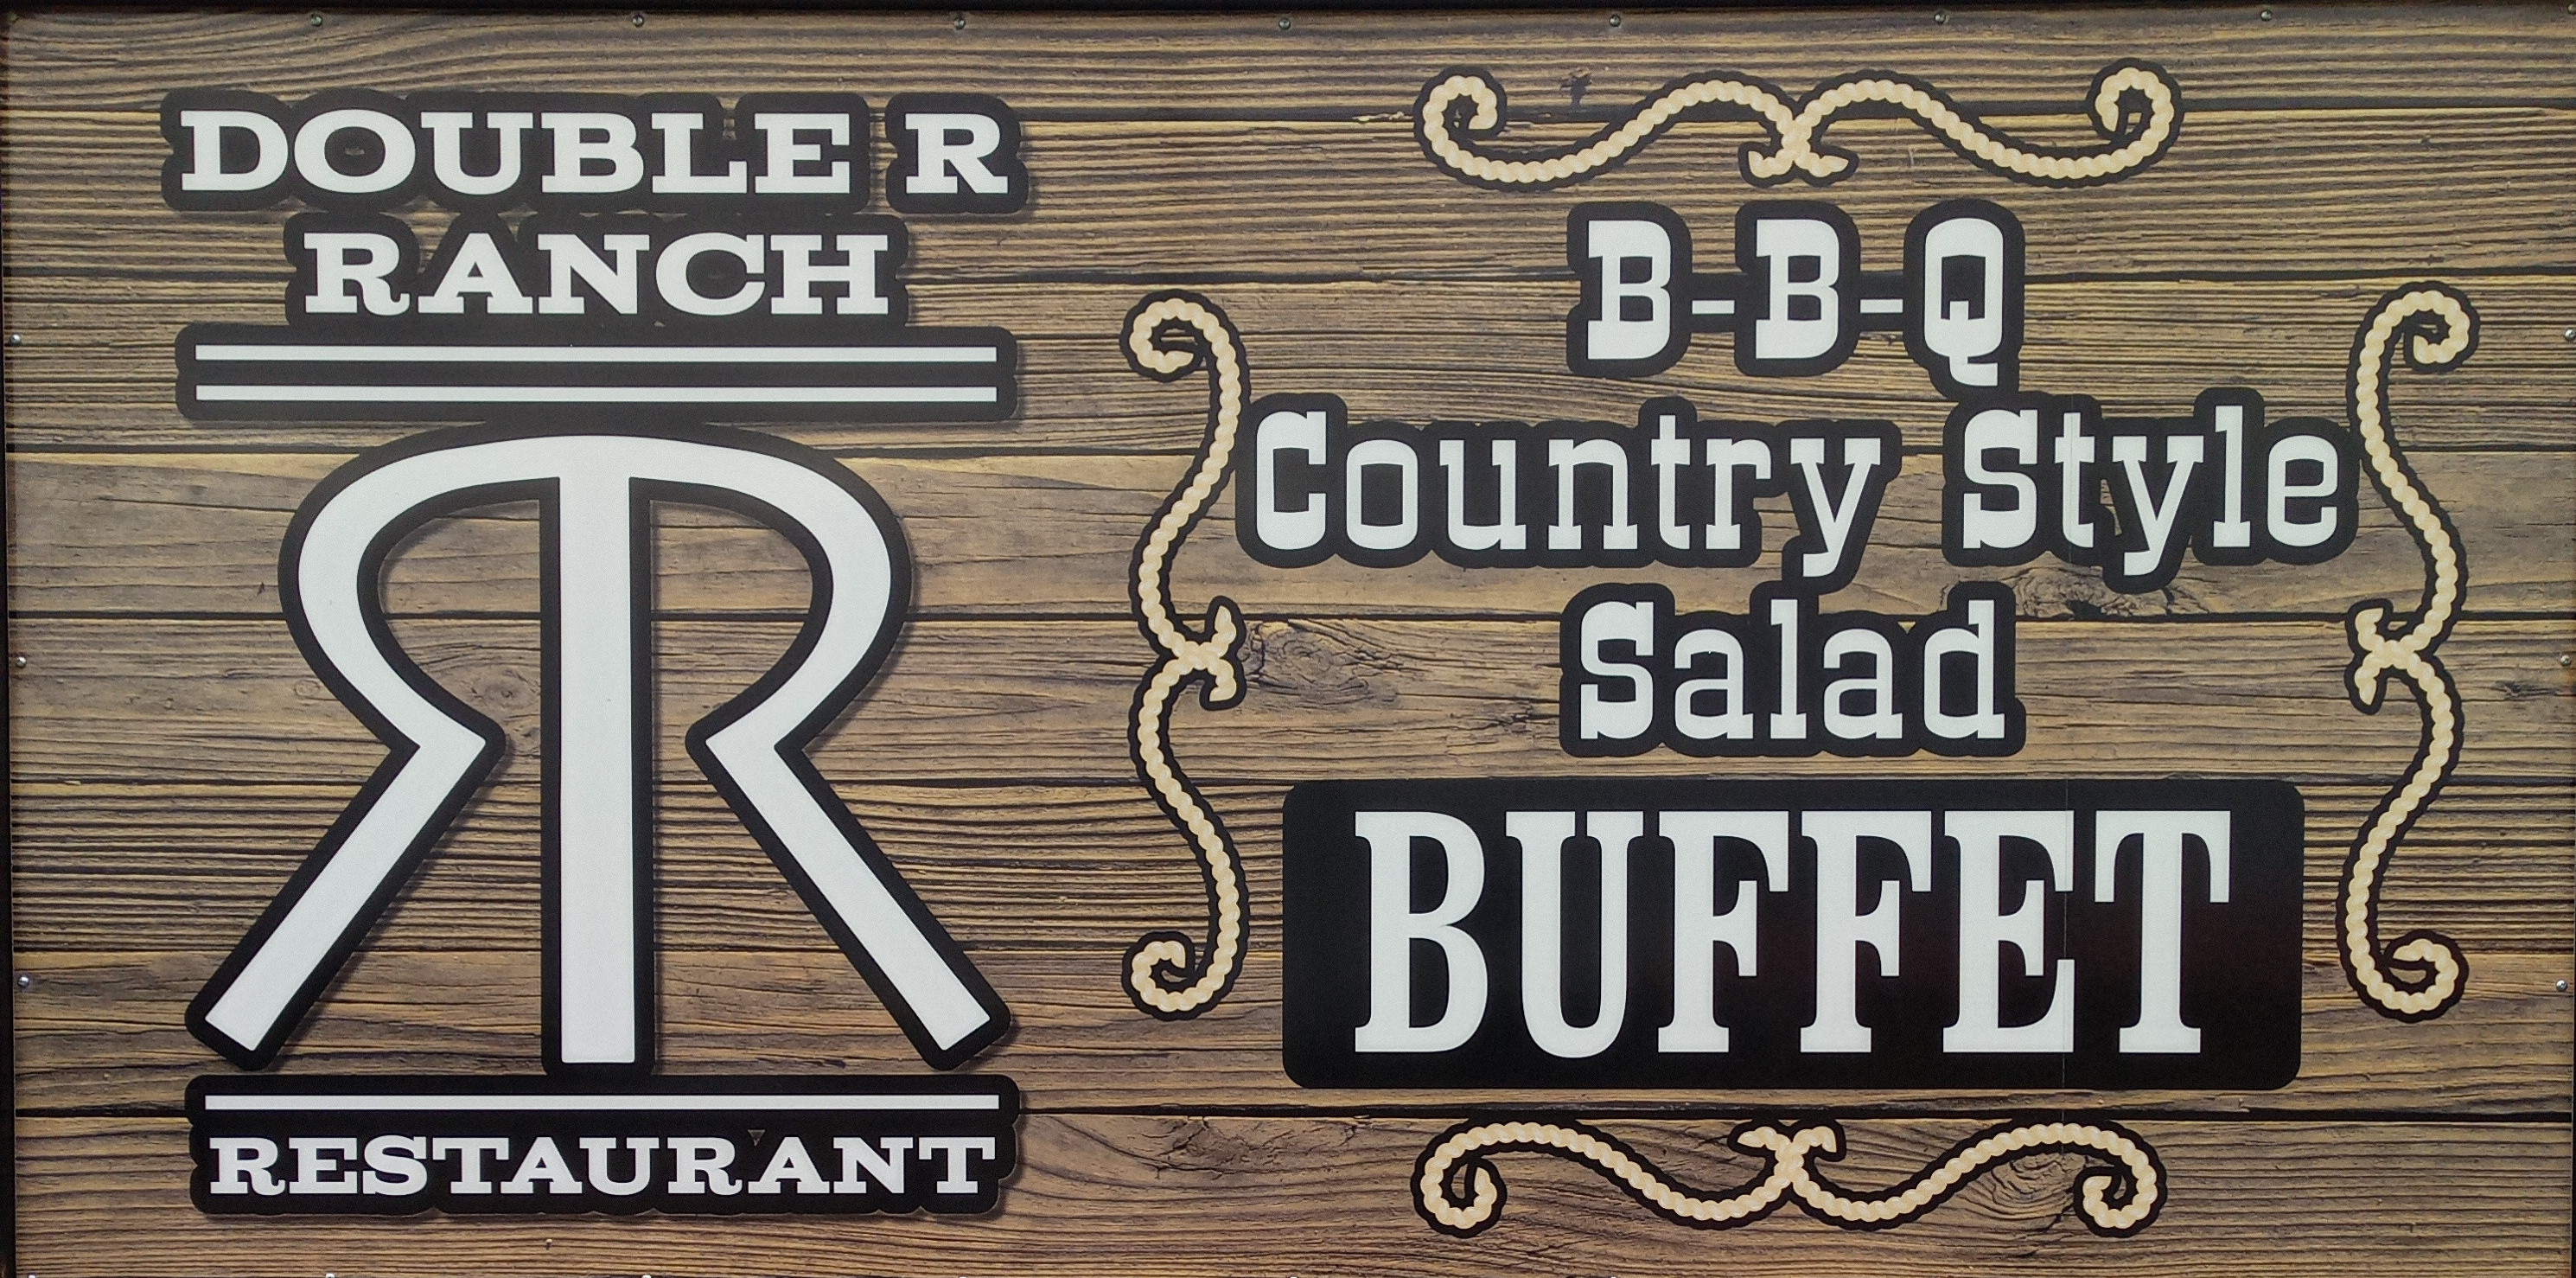 Double R Ranch Restaurant